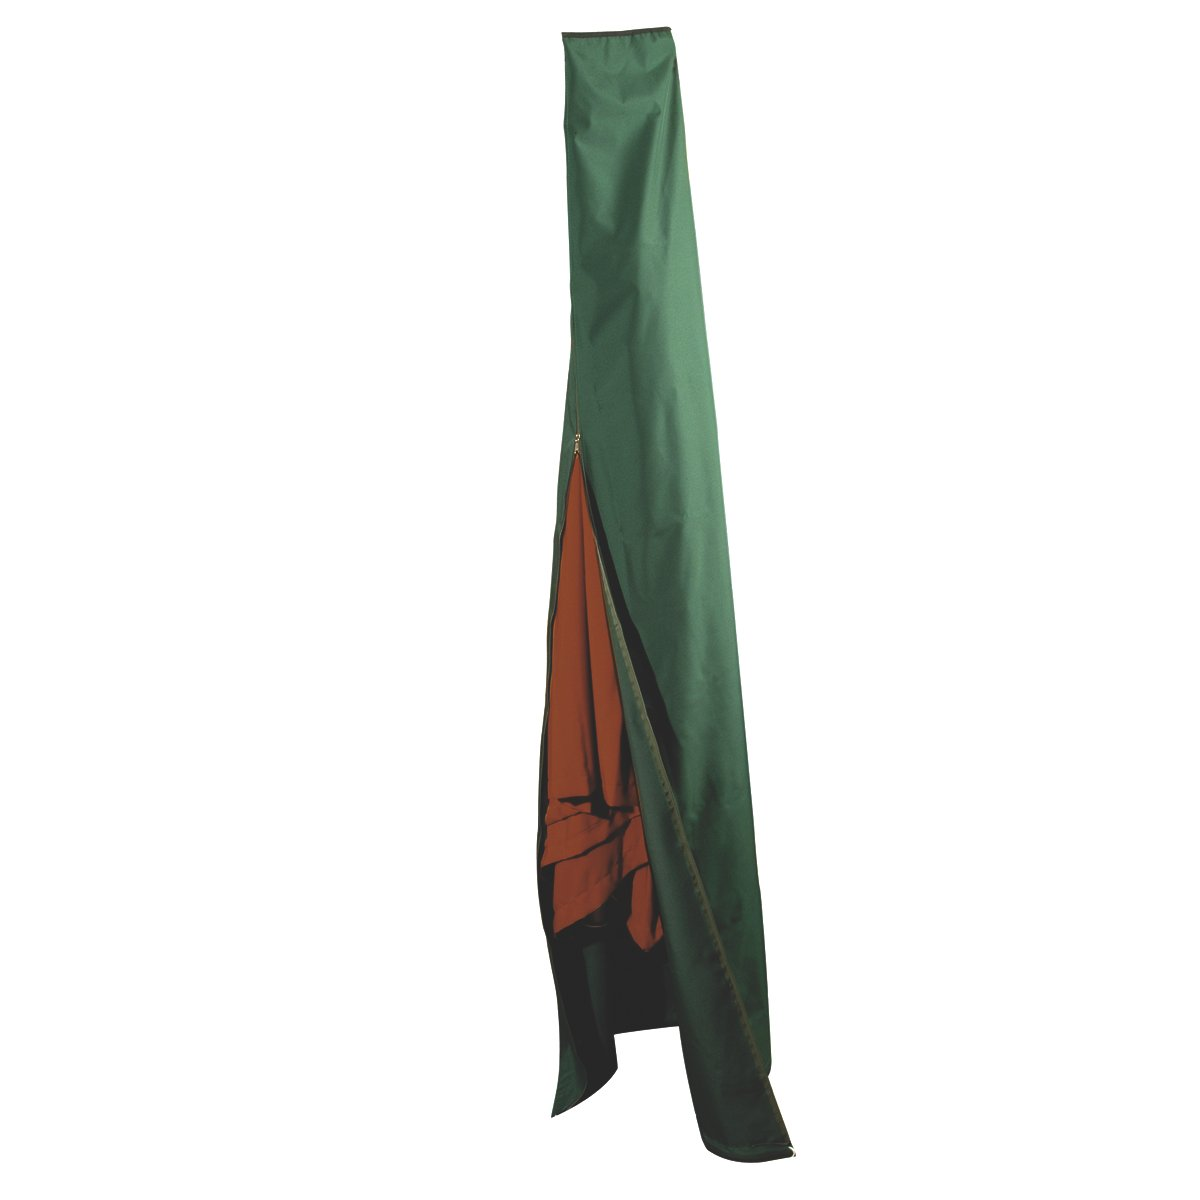 Bosmere D595 STORM BLACK Extra Large Parasol Cover with Zip Bosmere Products Ltd